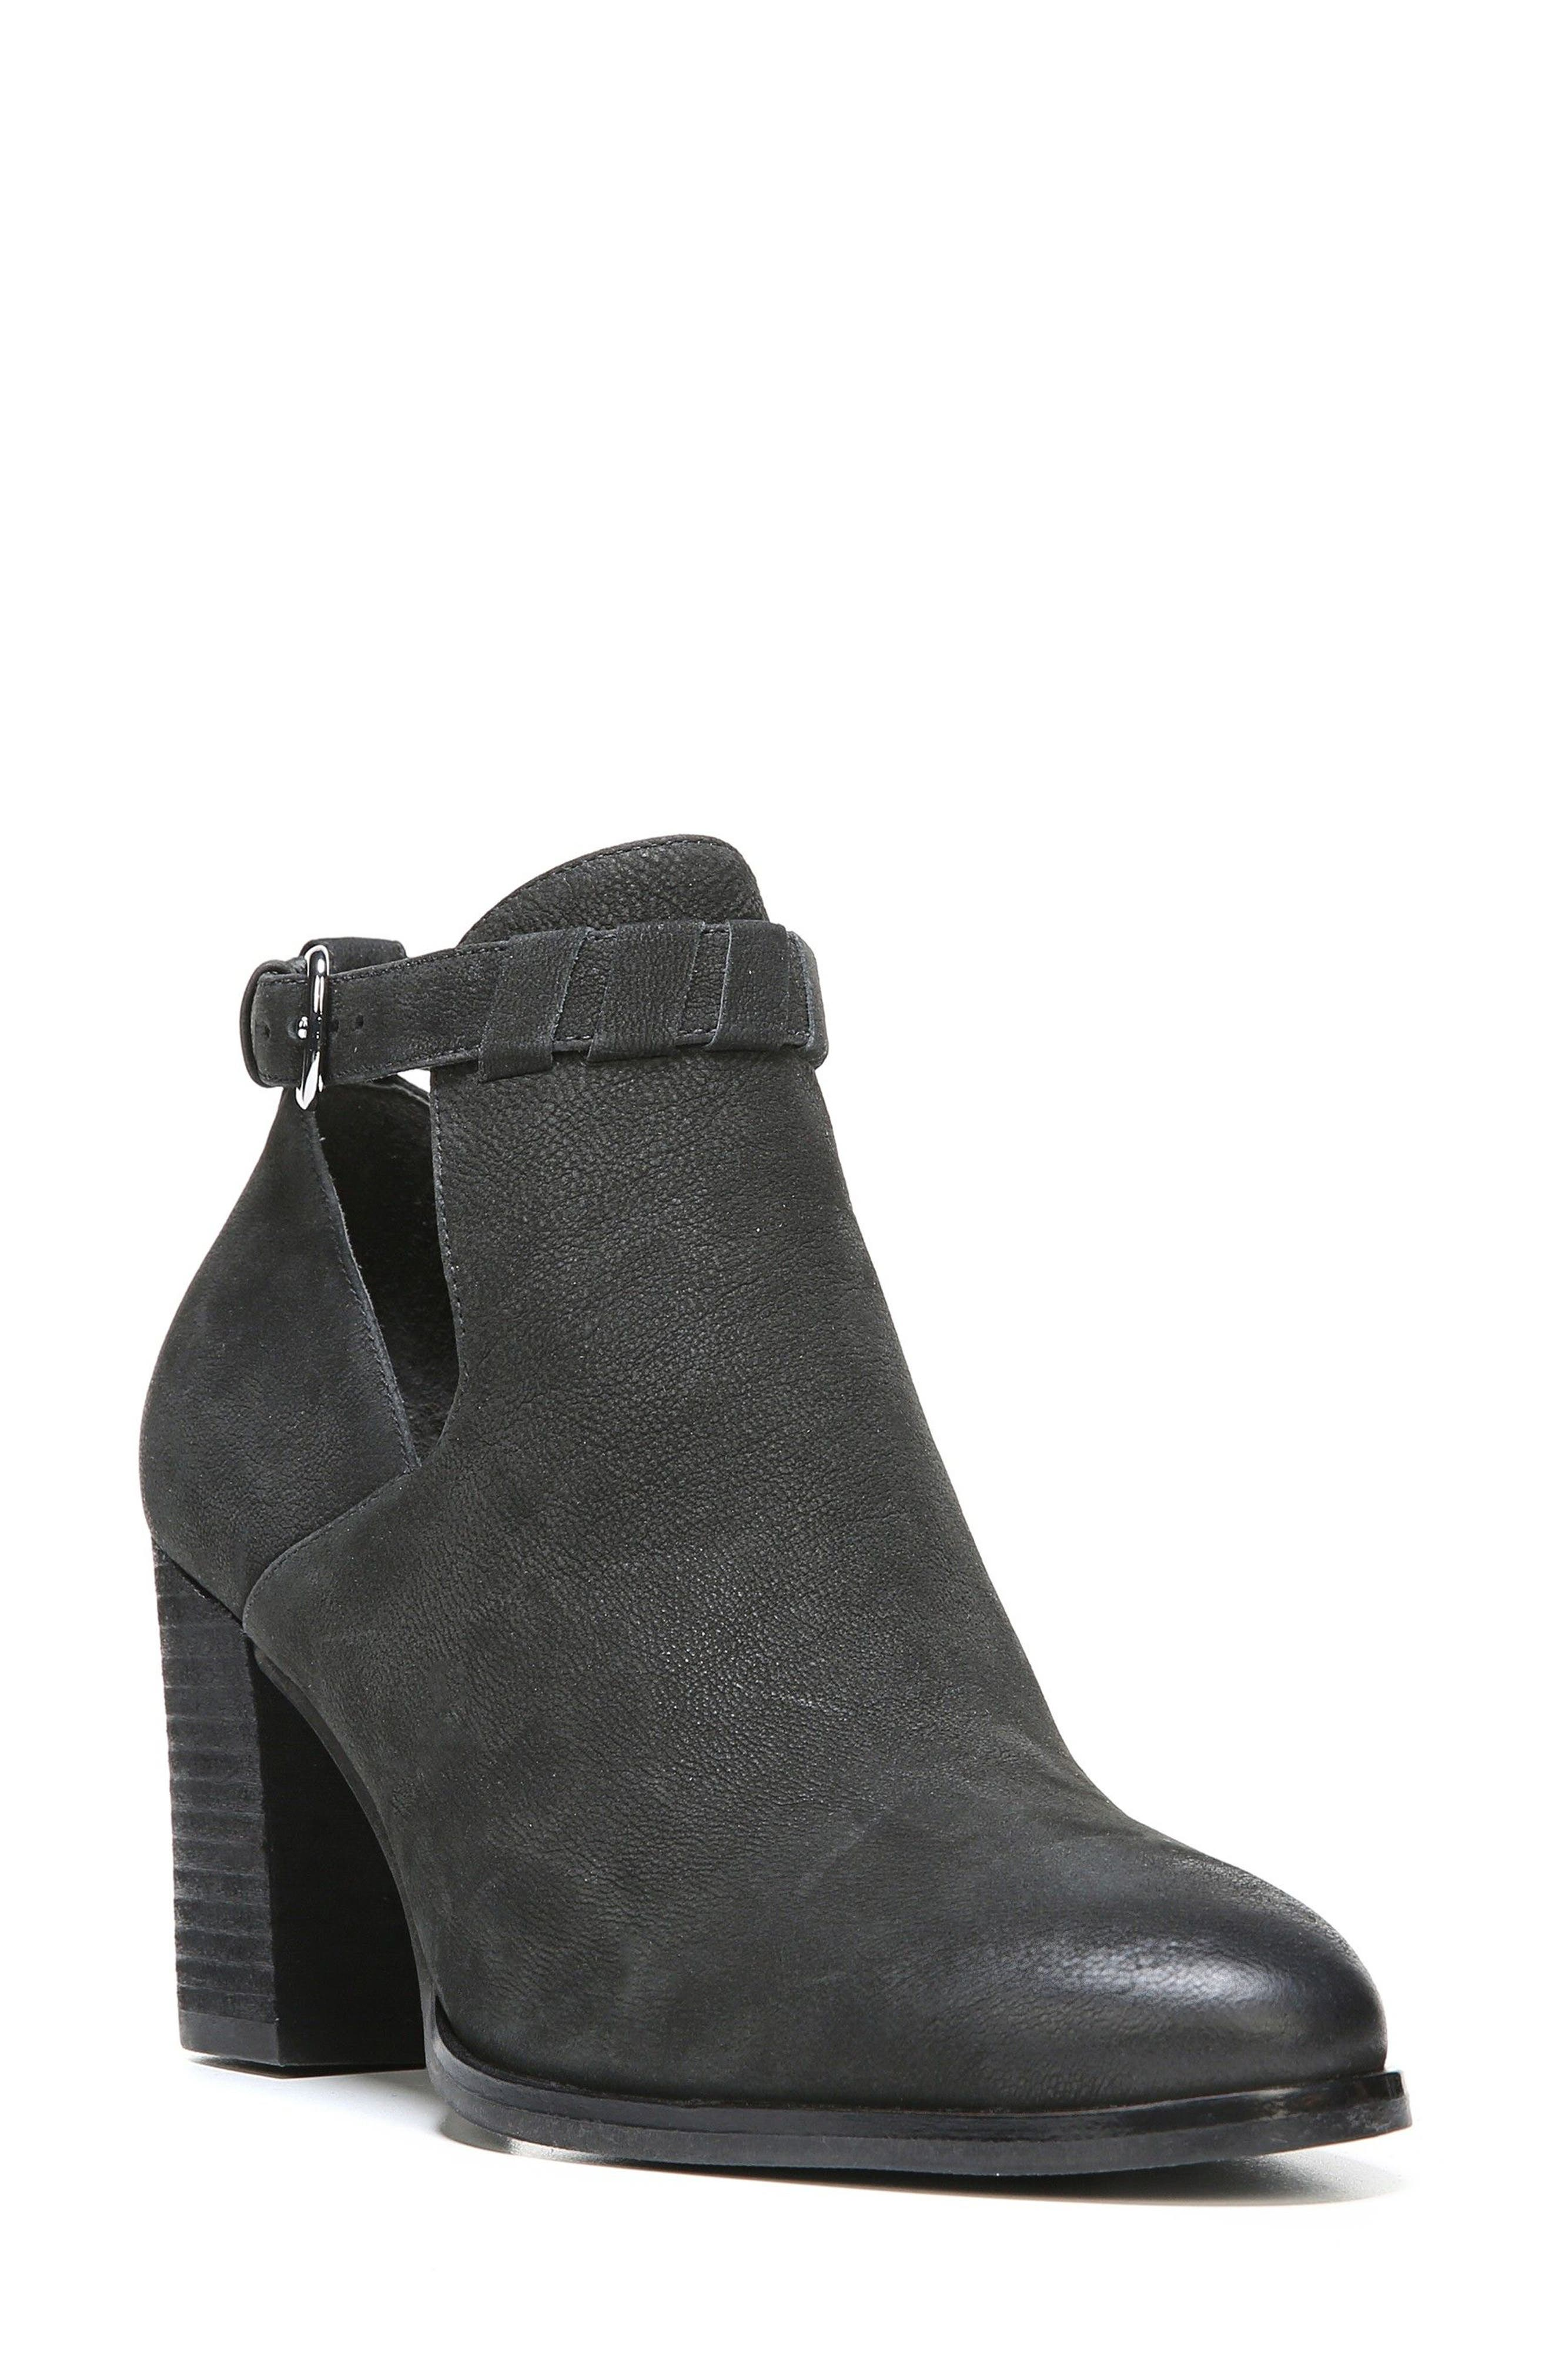 Samantha Block Heel Bootie,                             Main thumbnail 1, color,                             Black Nubuck